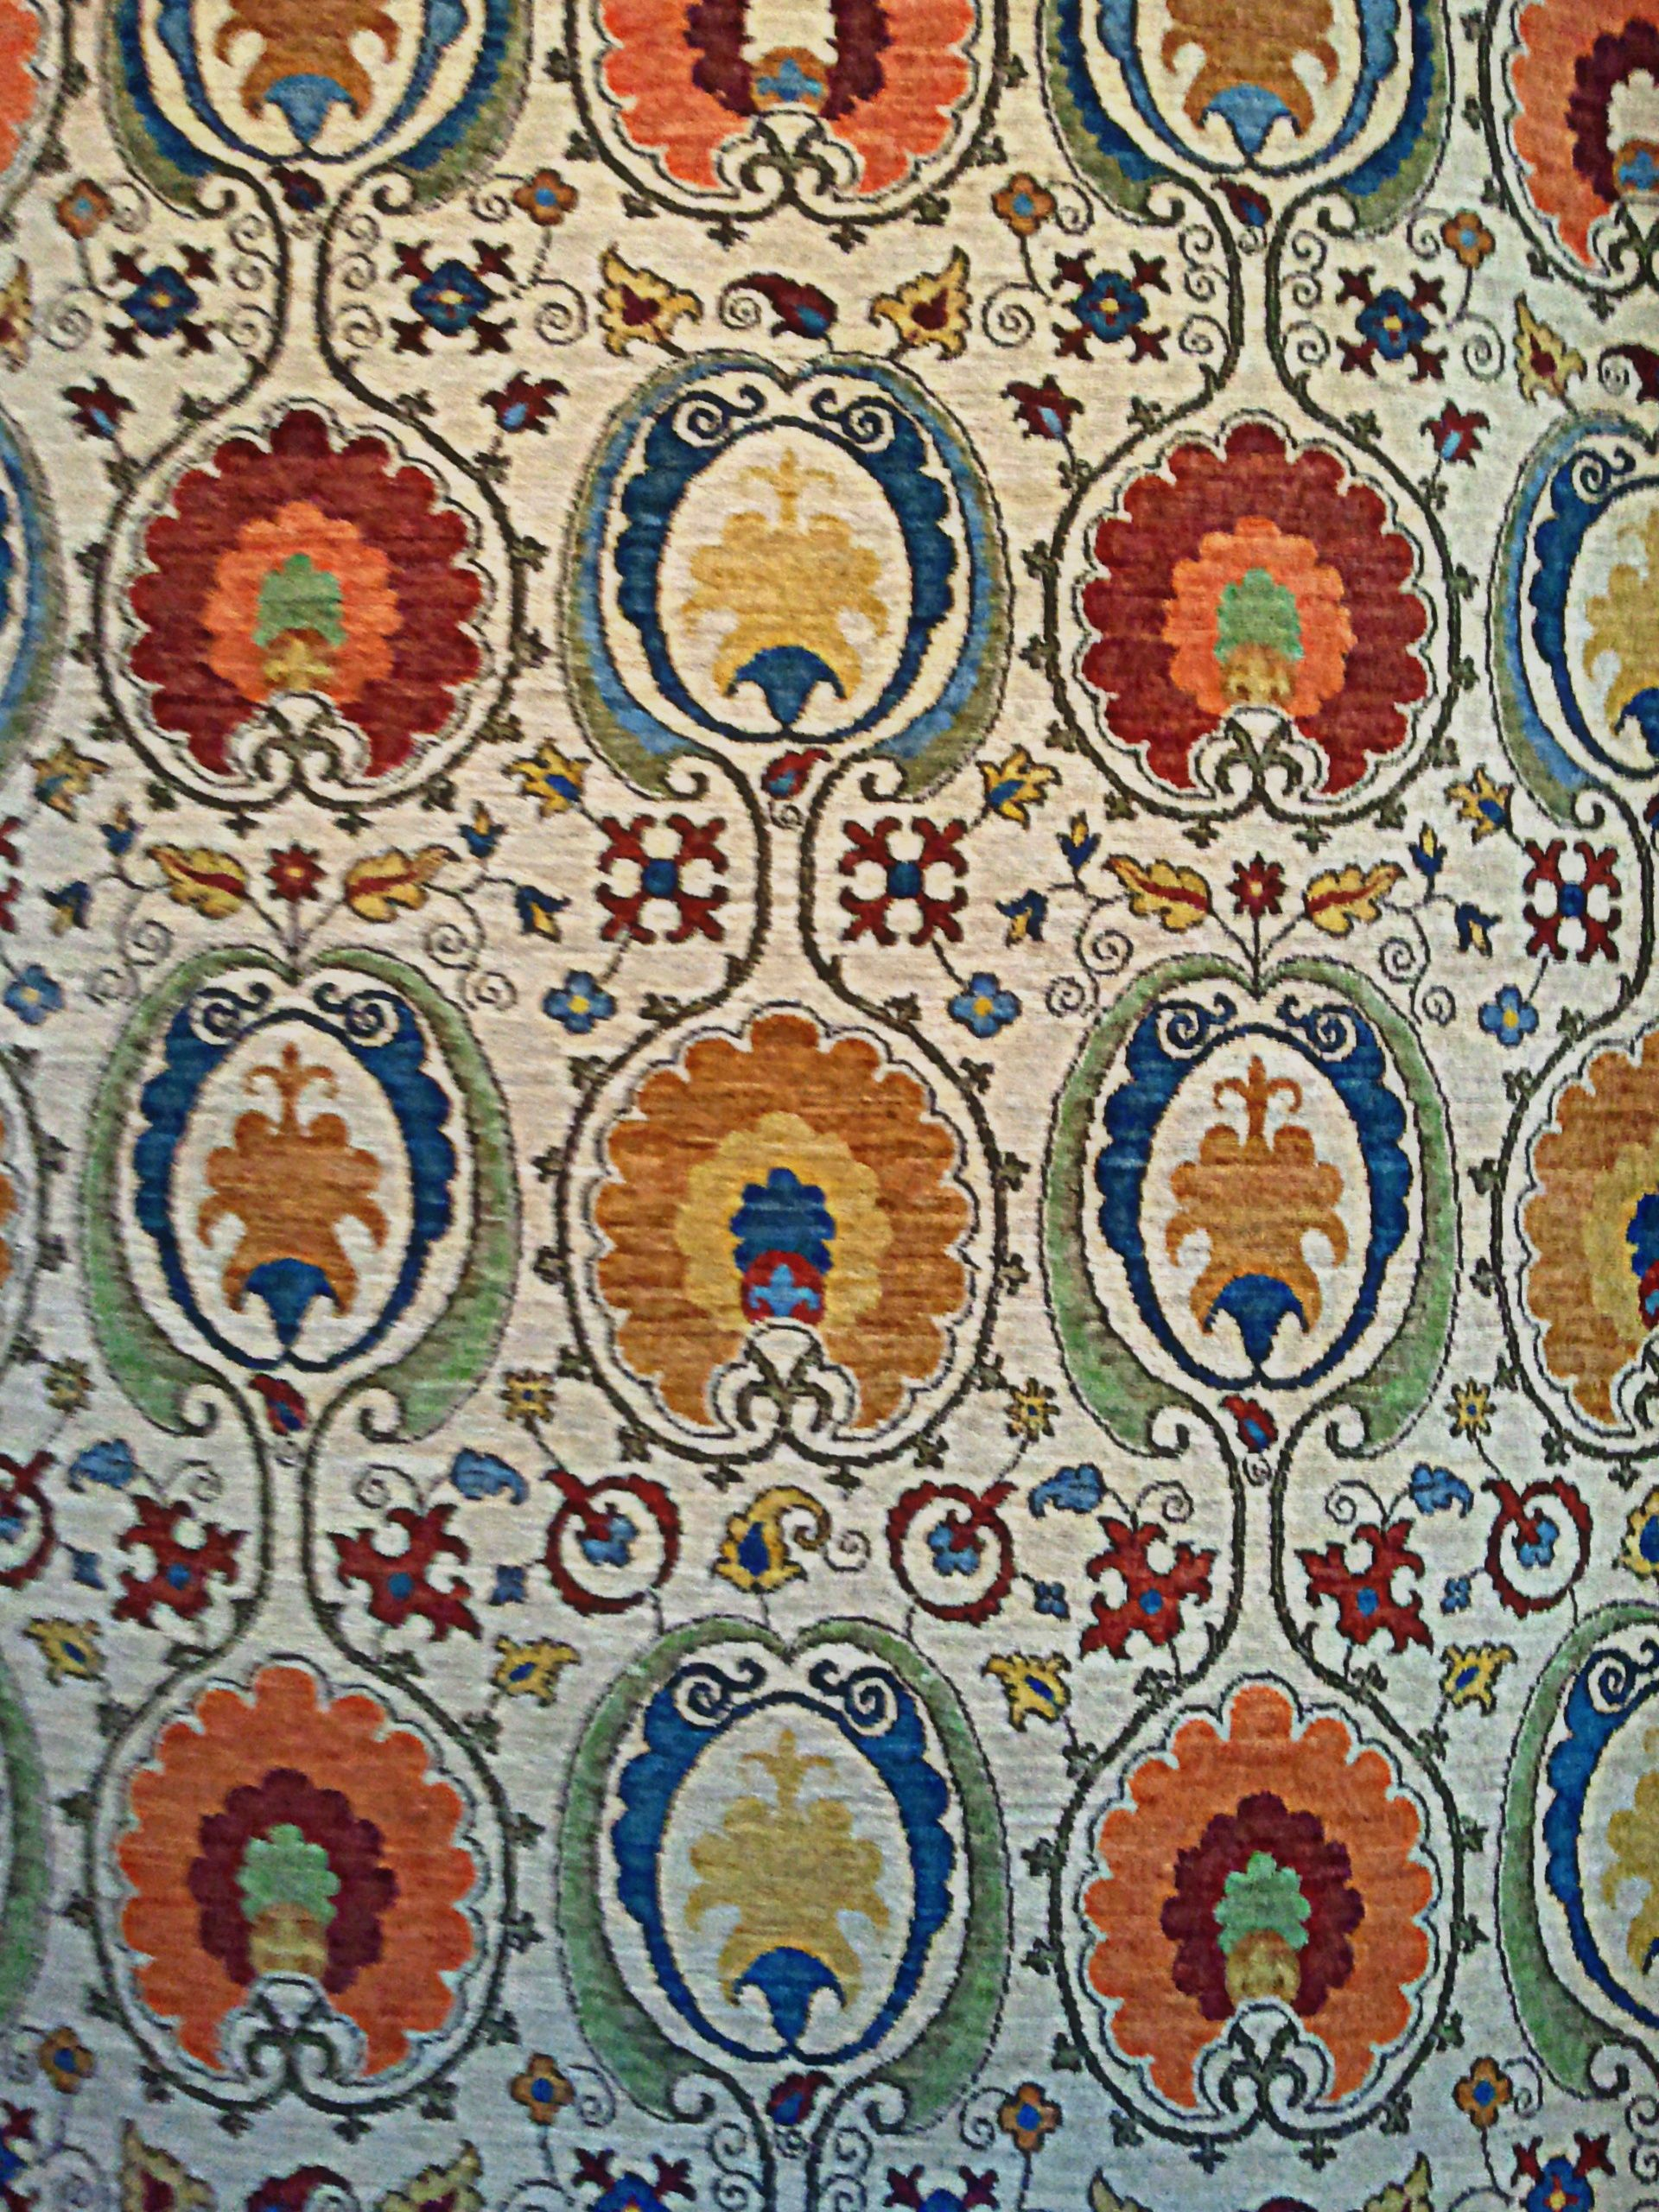 Fine Handmade Persian Wool Rug, Bright Red, Blue And Gold, All Over